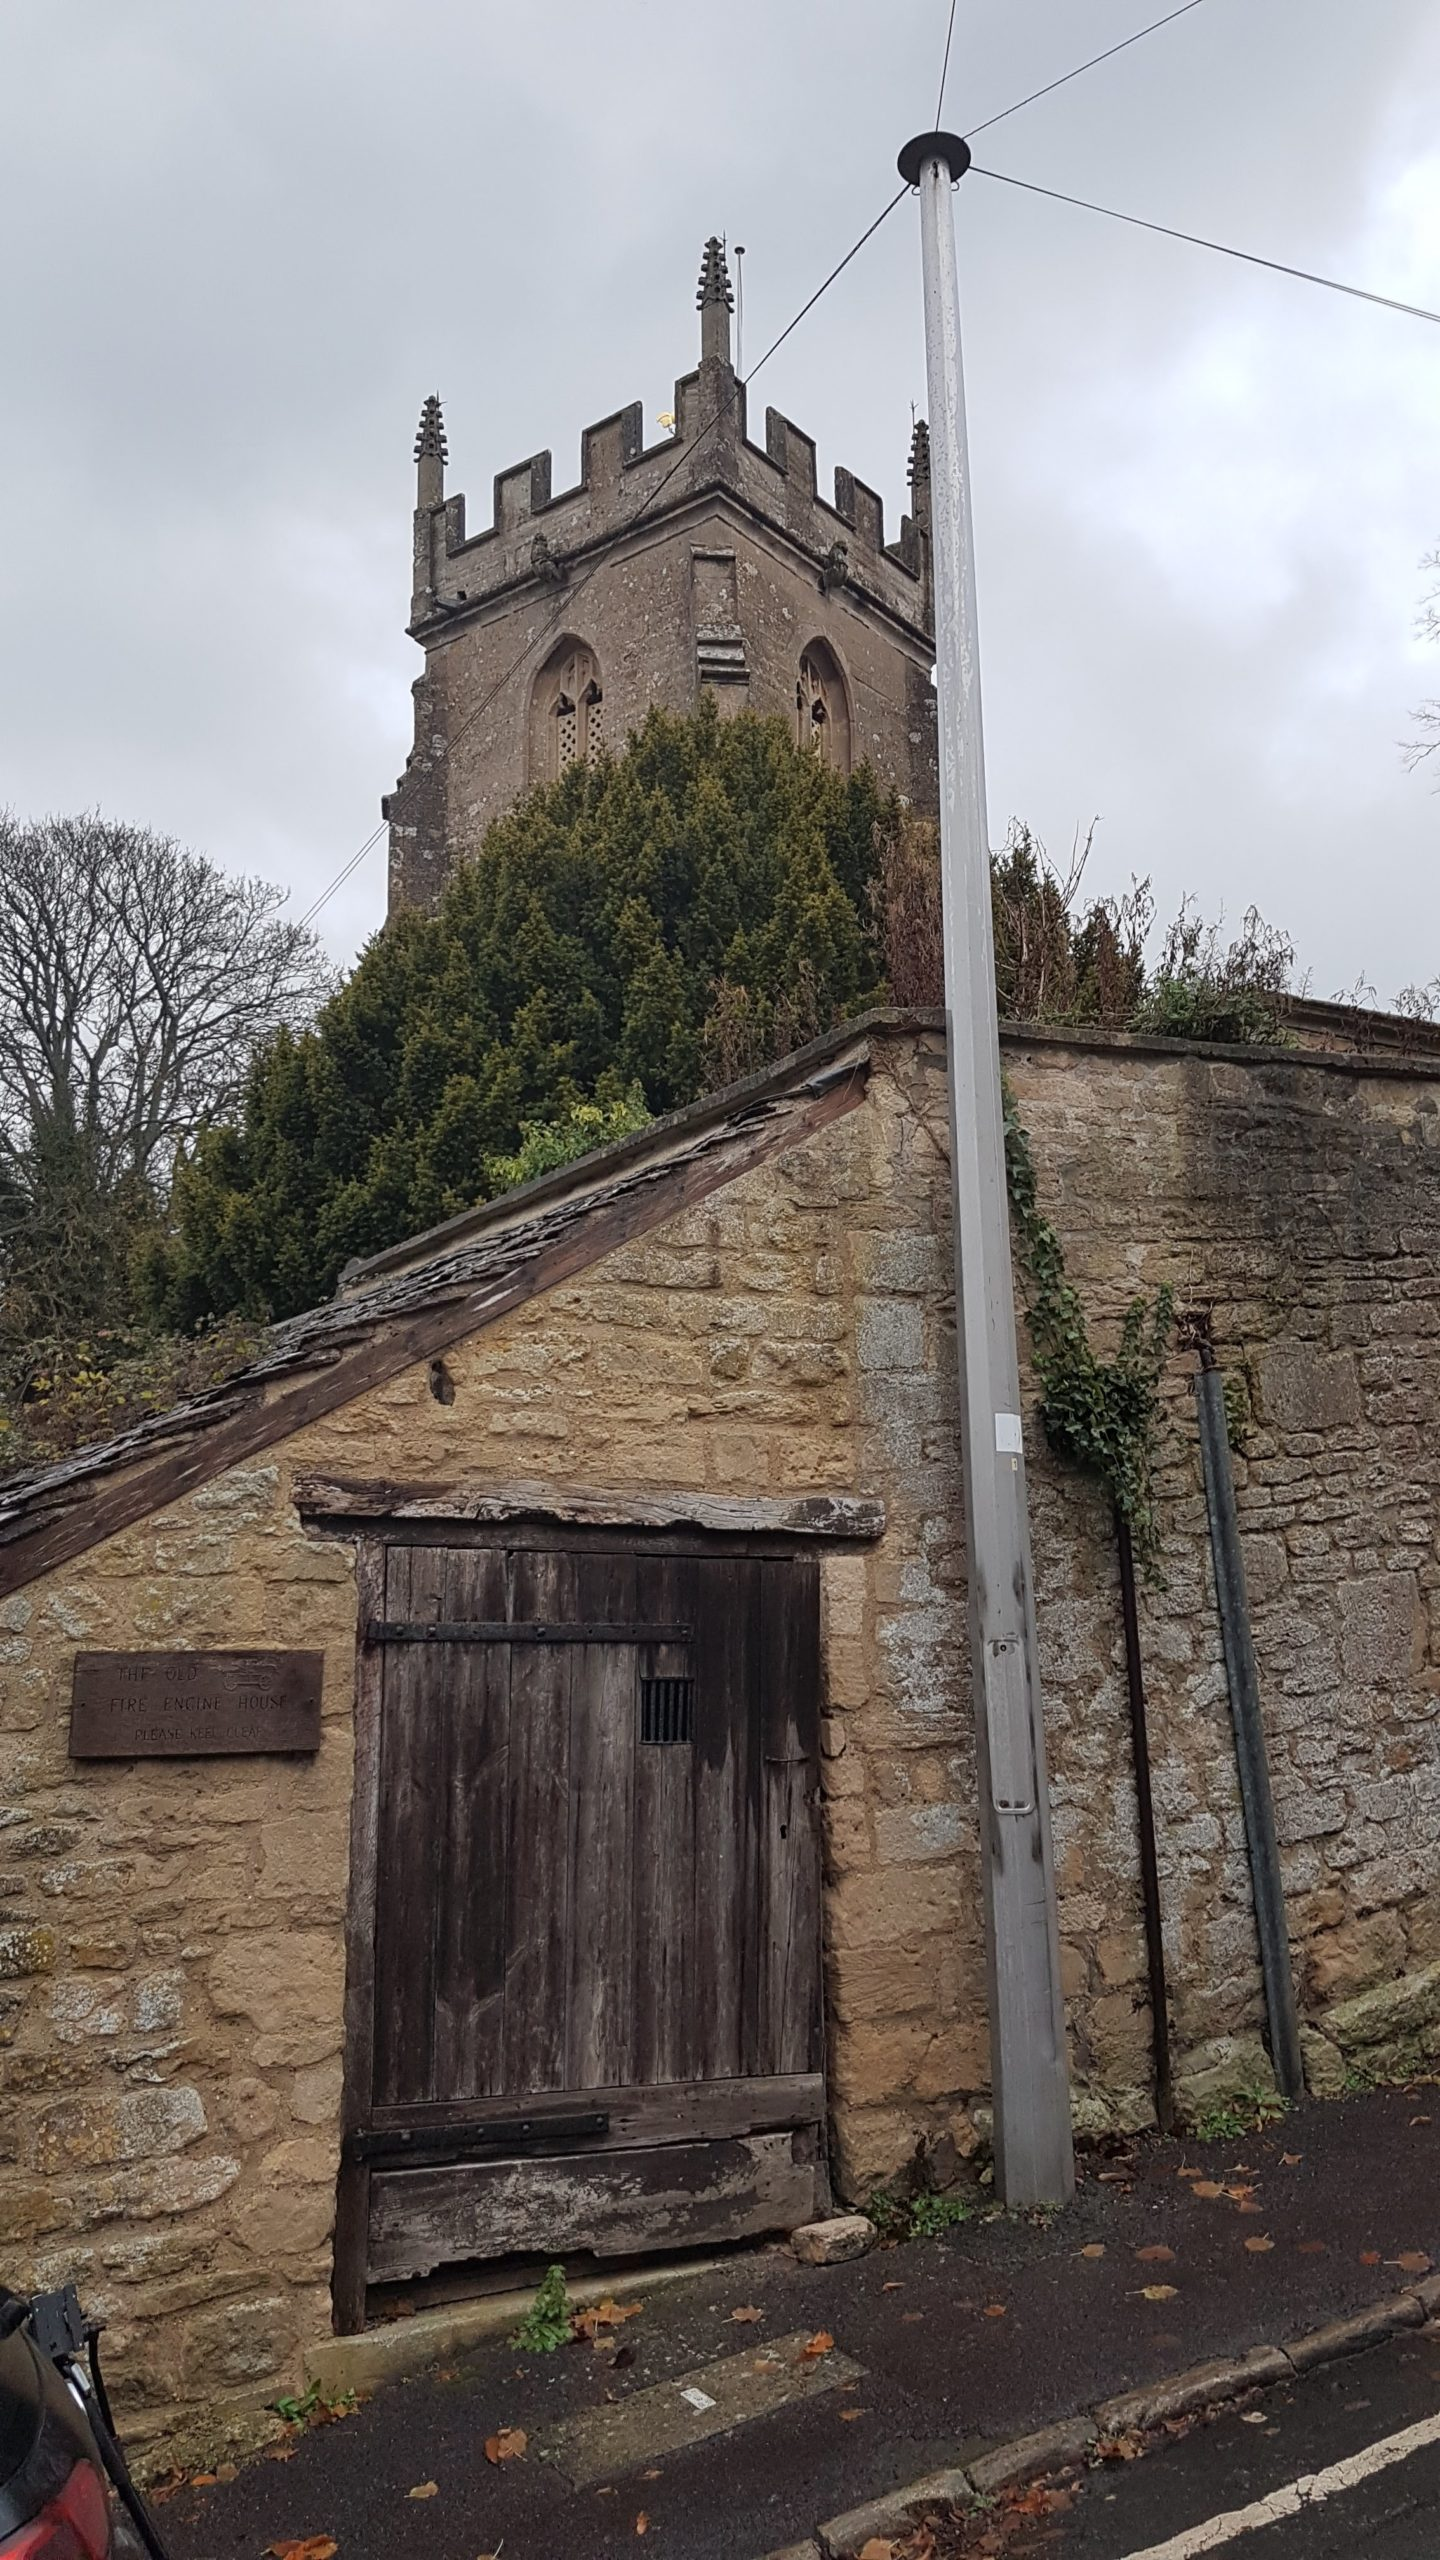 Exterior of the lock-up, showing the parish church in the background.